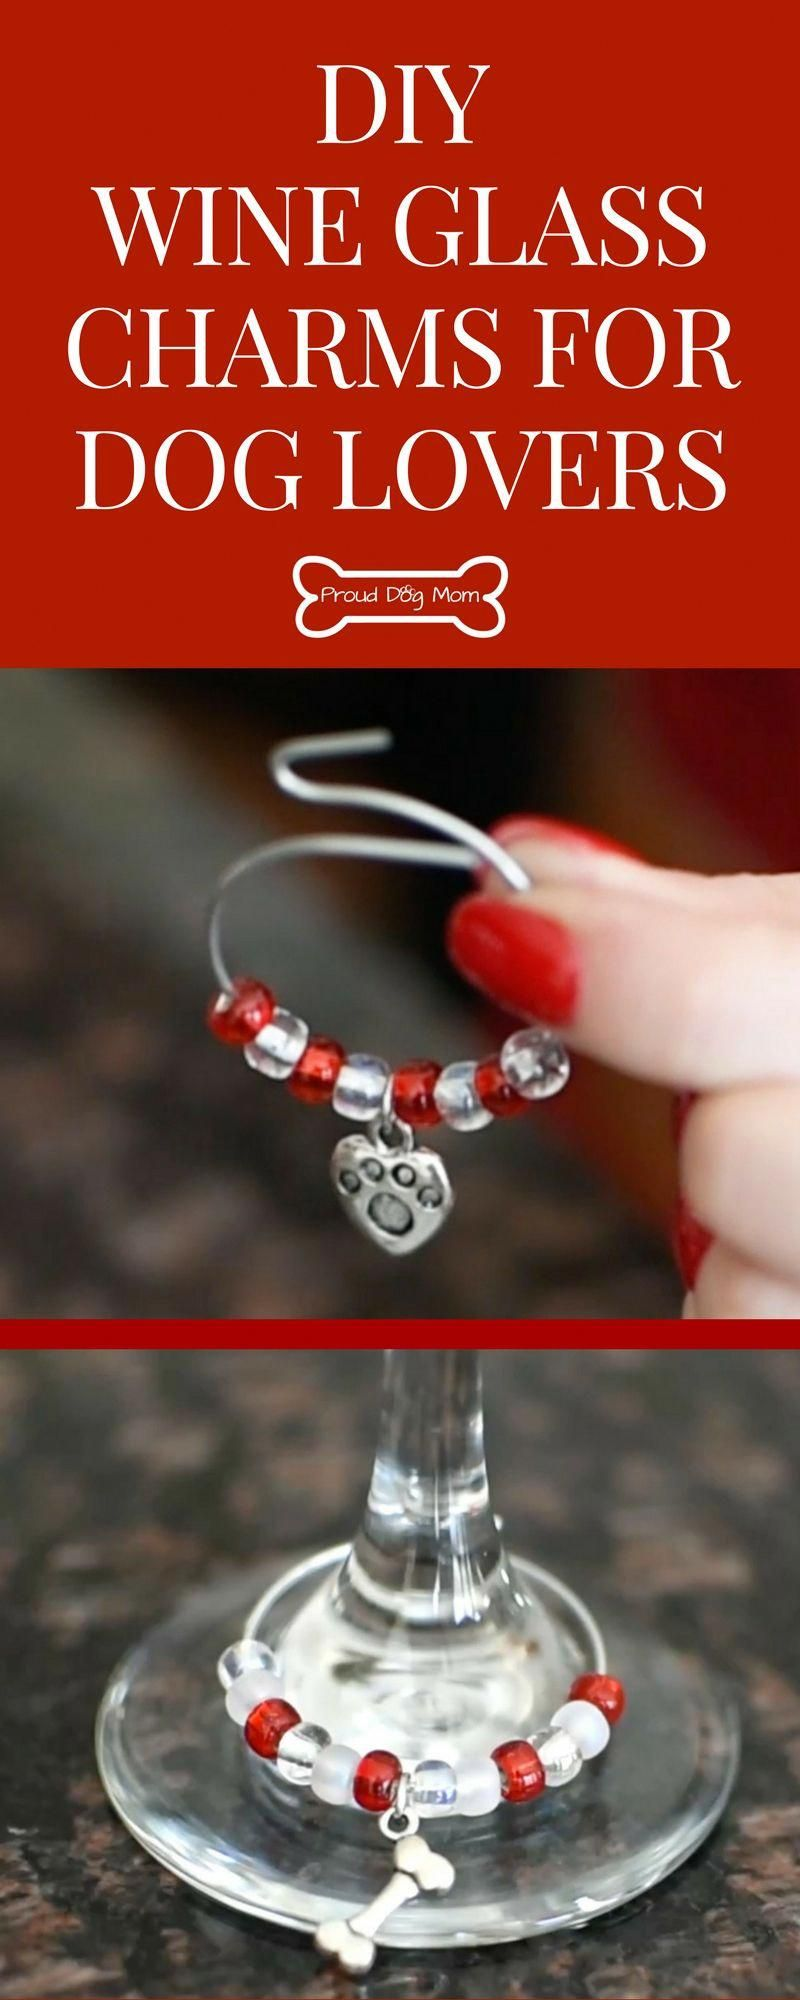 Diy Wine Glass Charms For Dog Lovers Proud Dog Mom Diy Wine Glass Wine Glass Charms Glass Charm Diy